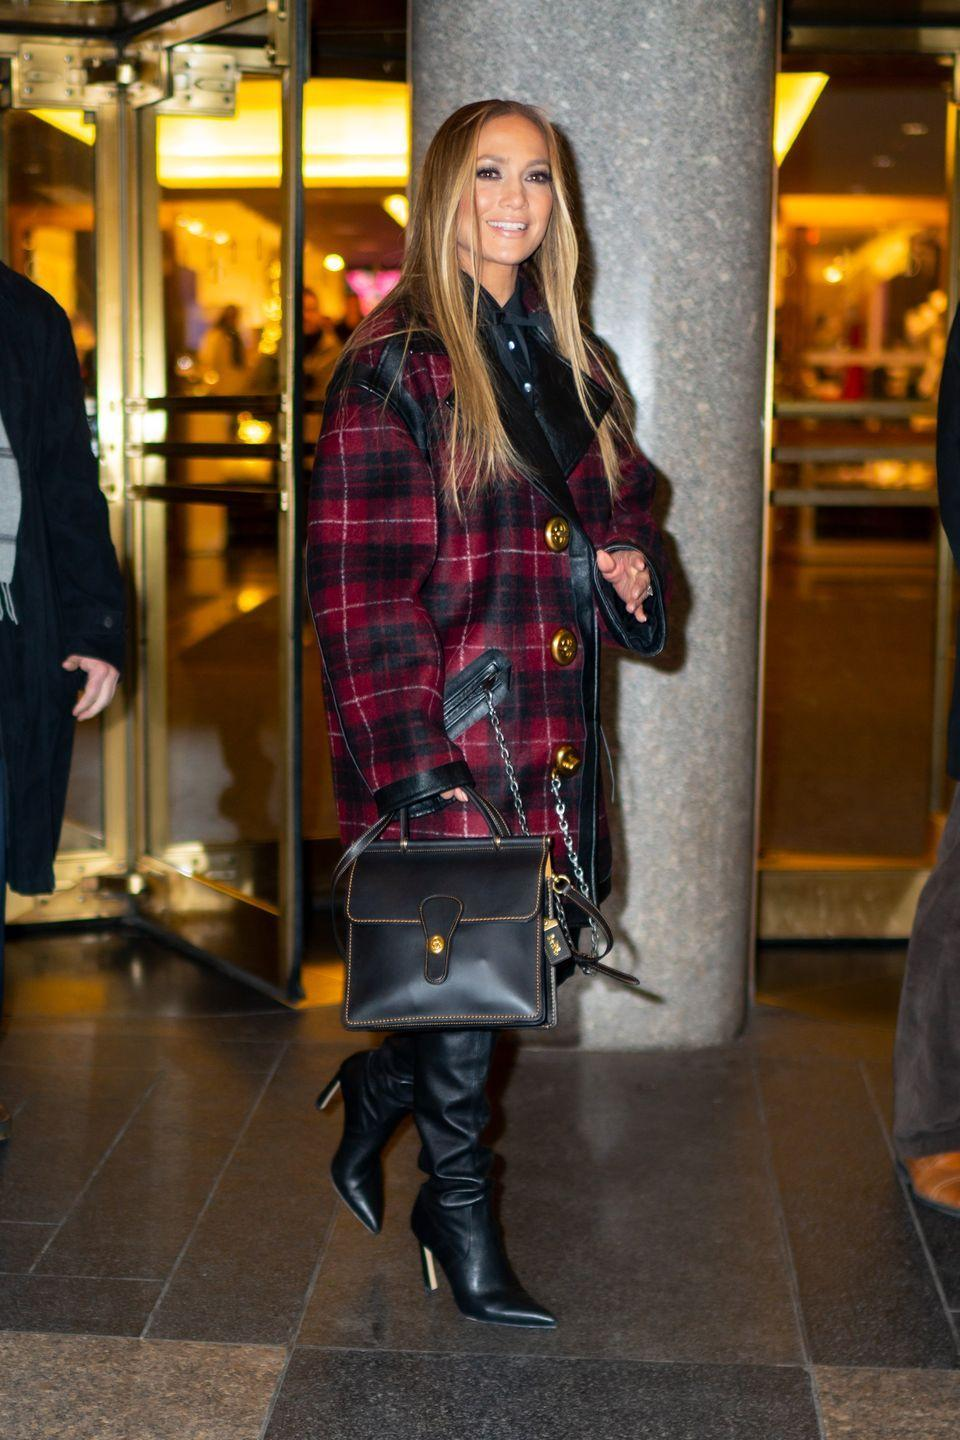 <p>The star wore a tartan oversized coat and chic leather-look books to brave the chilly NYC December temperatures.</p>